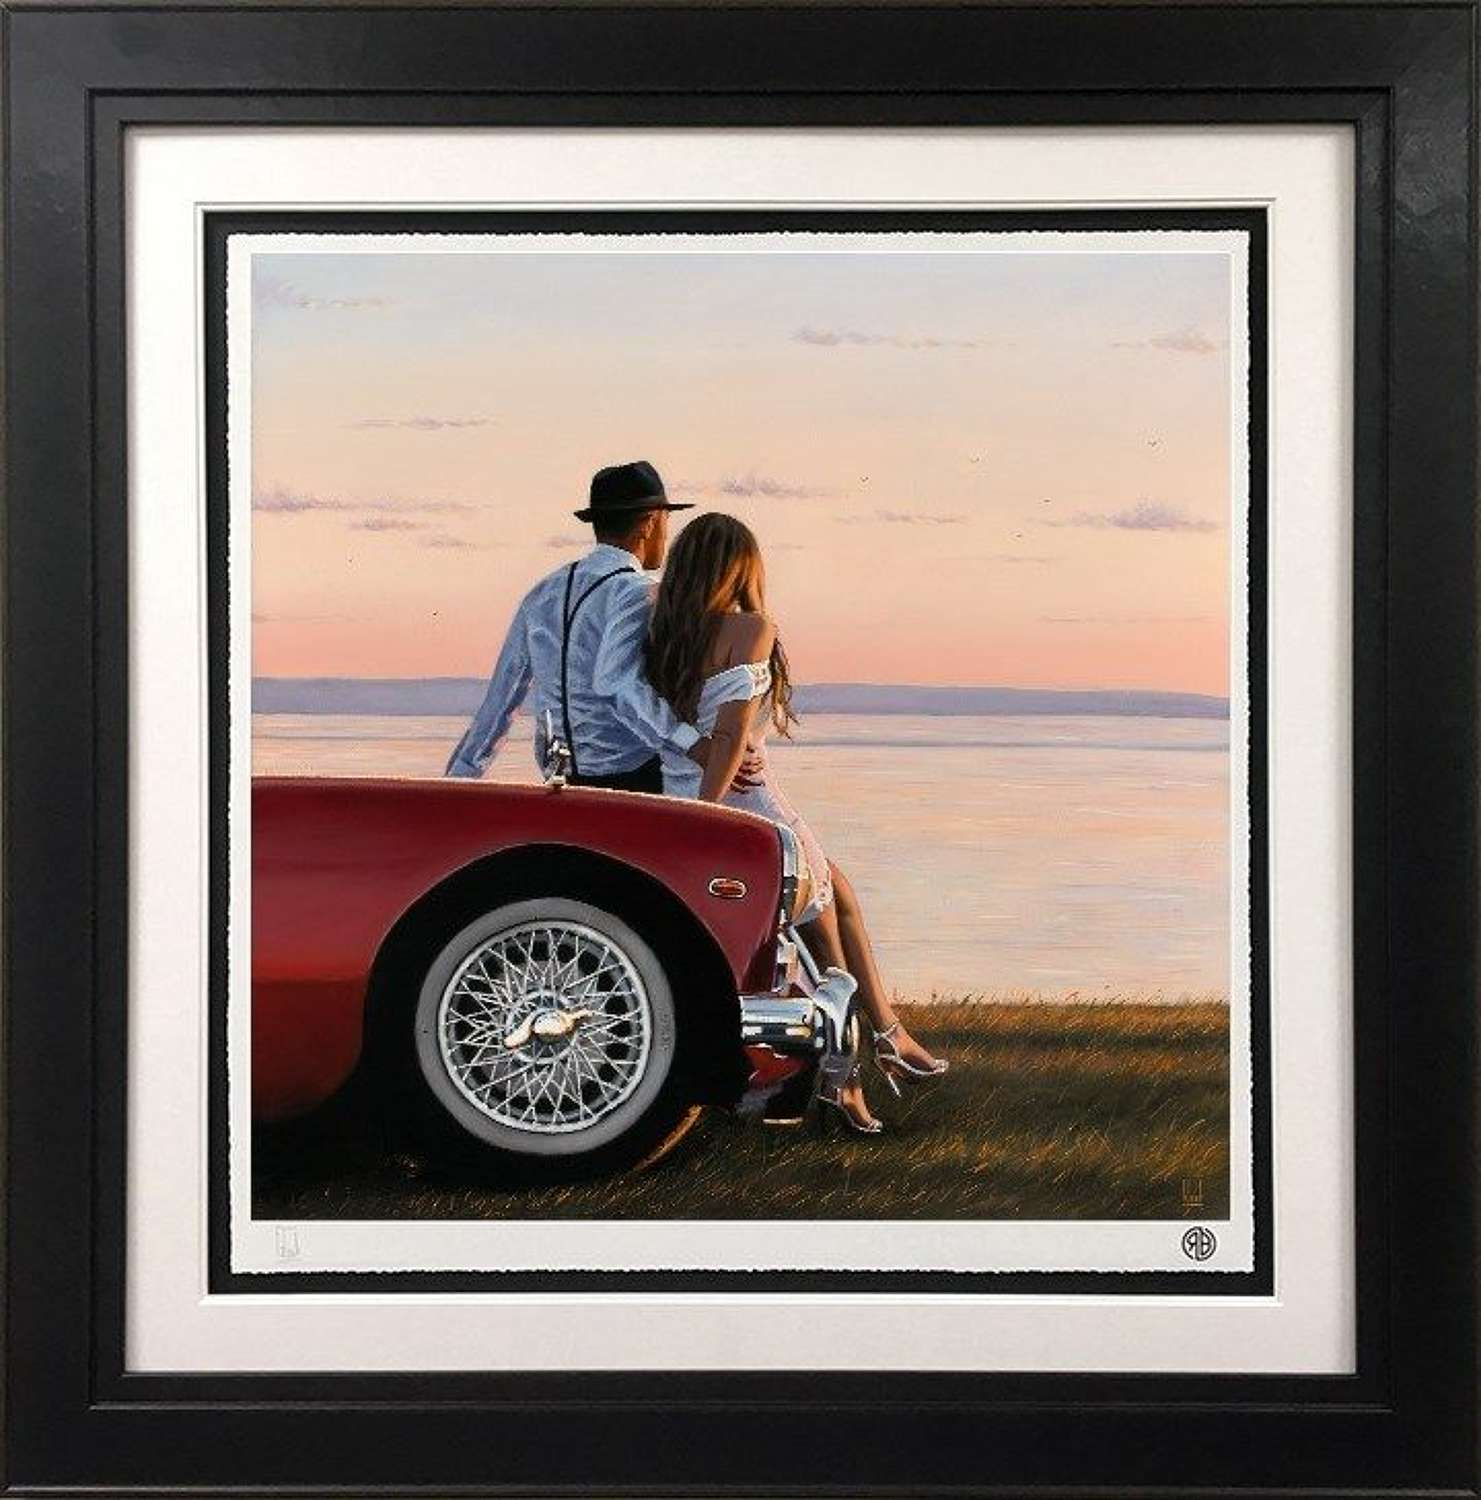 The Lookout - Framed Art Print by Richard Blunt